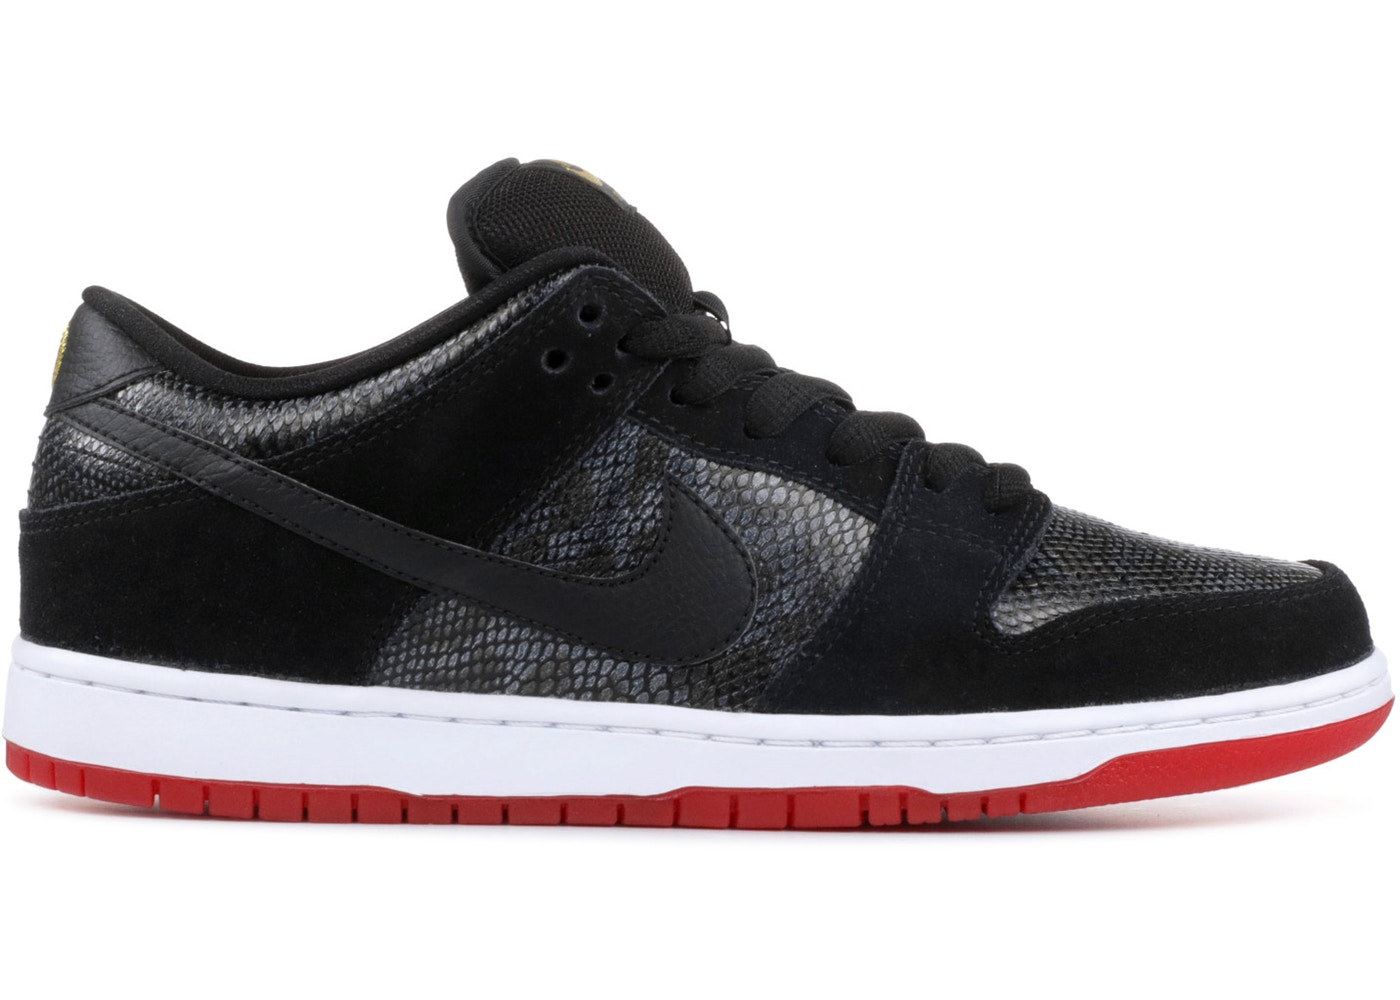 ナイキ NIKE ダンク エスビー スニーカー 【 SB DUNK LOW SNAKE EYES BLACK BLACKUNIVERSITY RED 】 メンズ